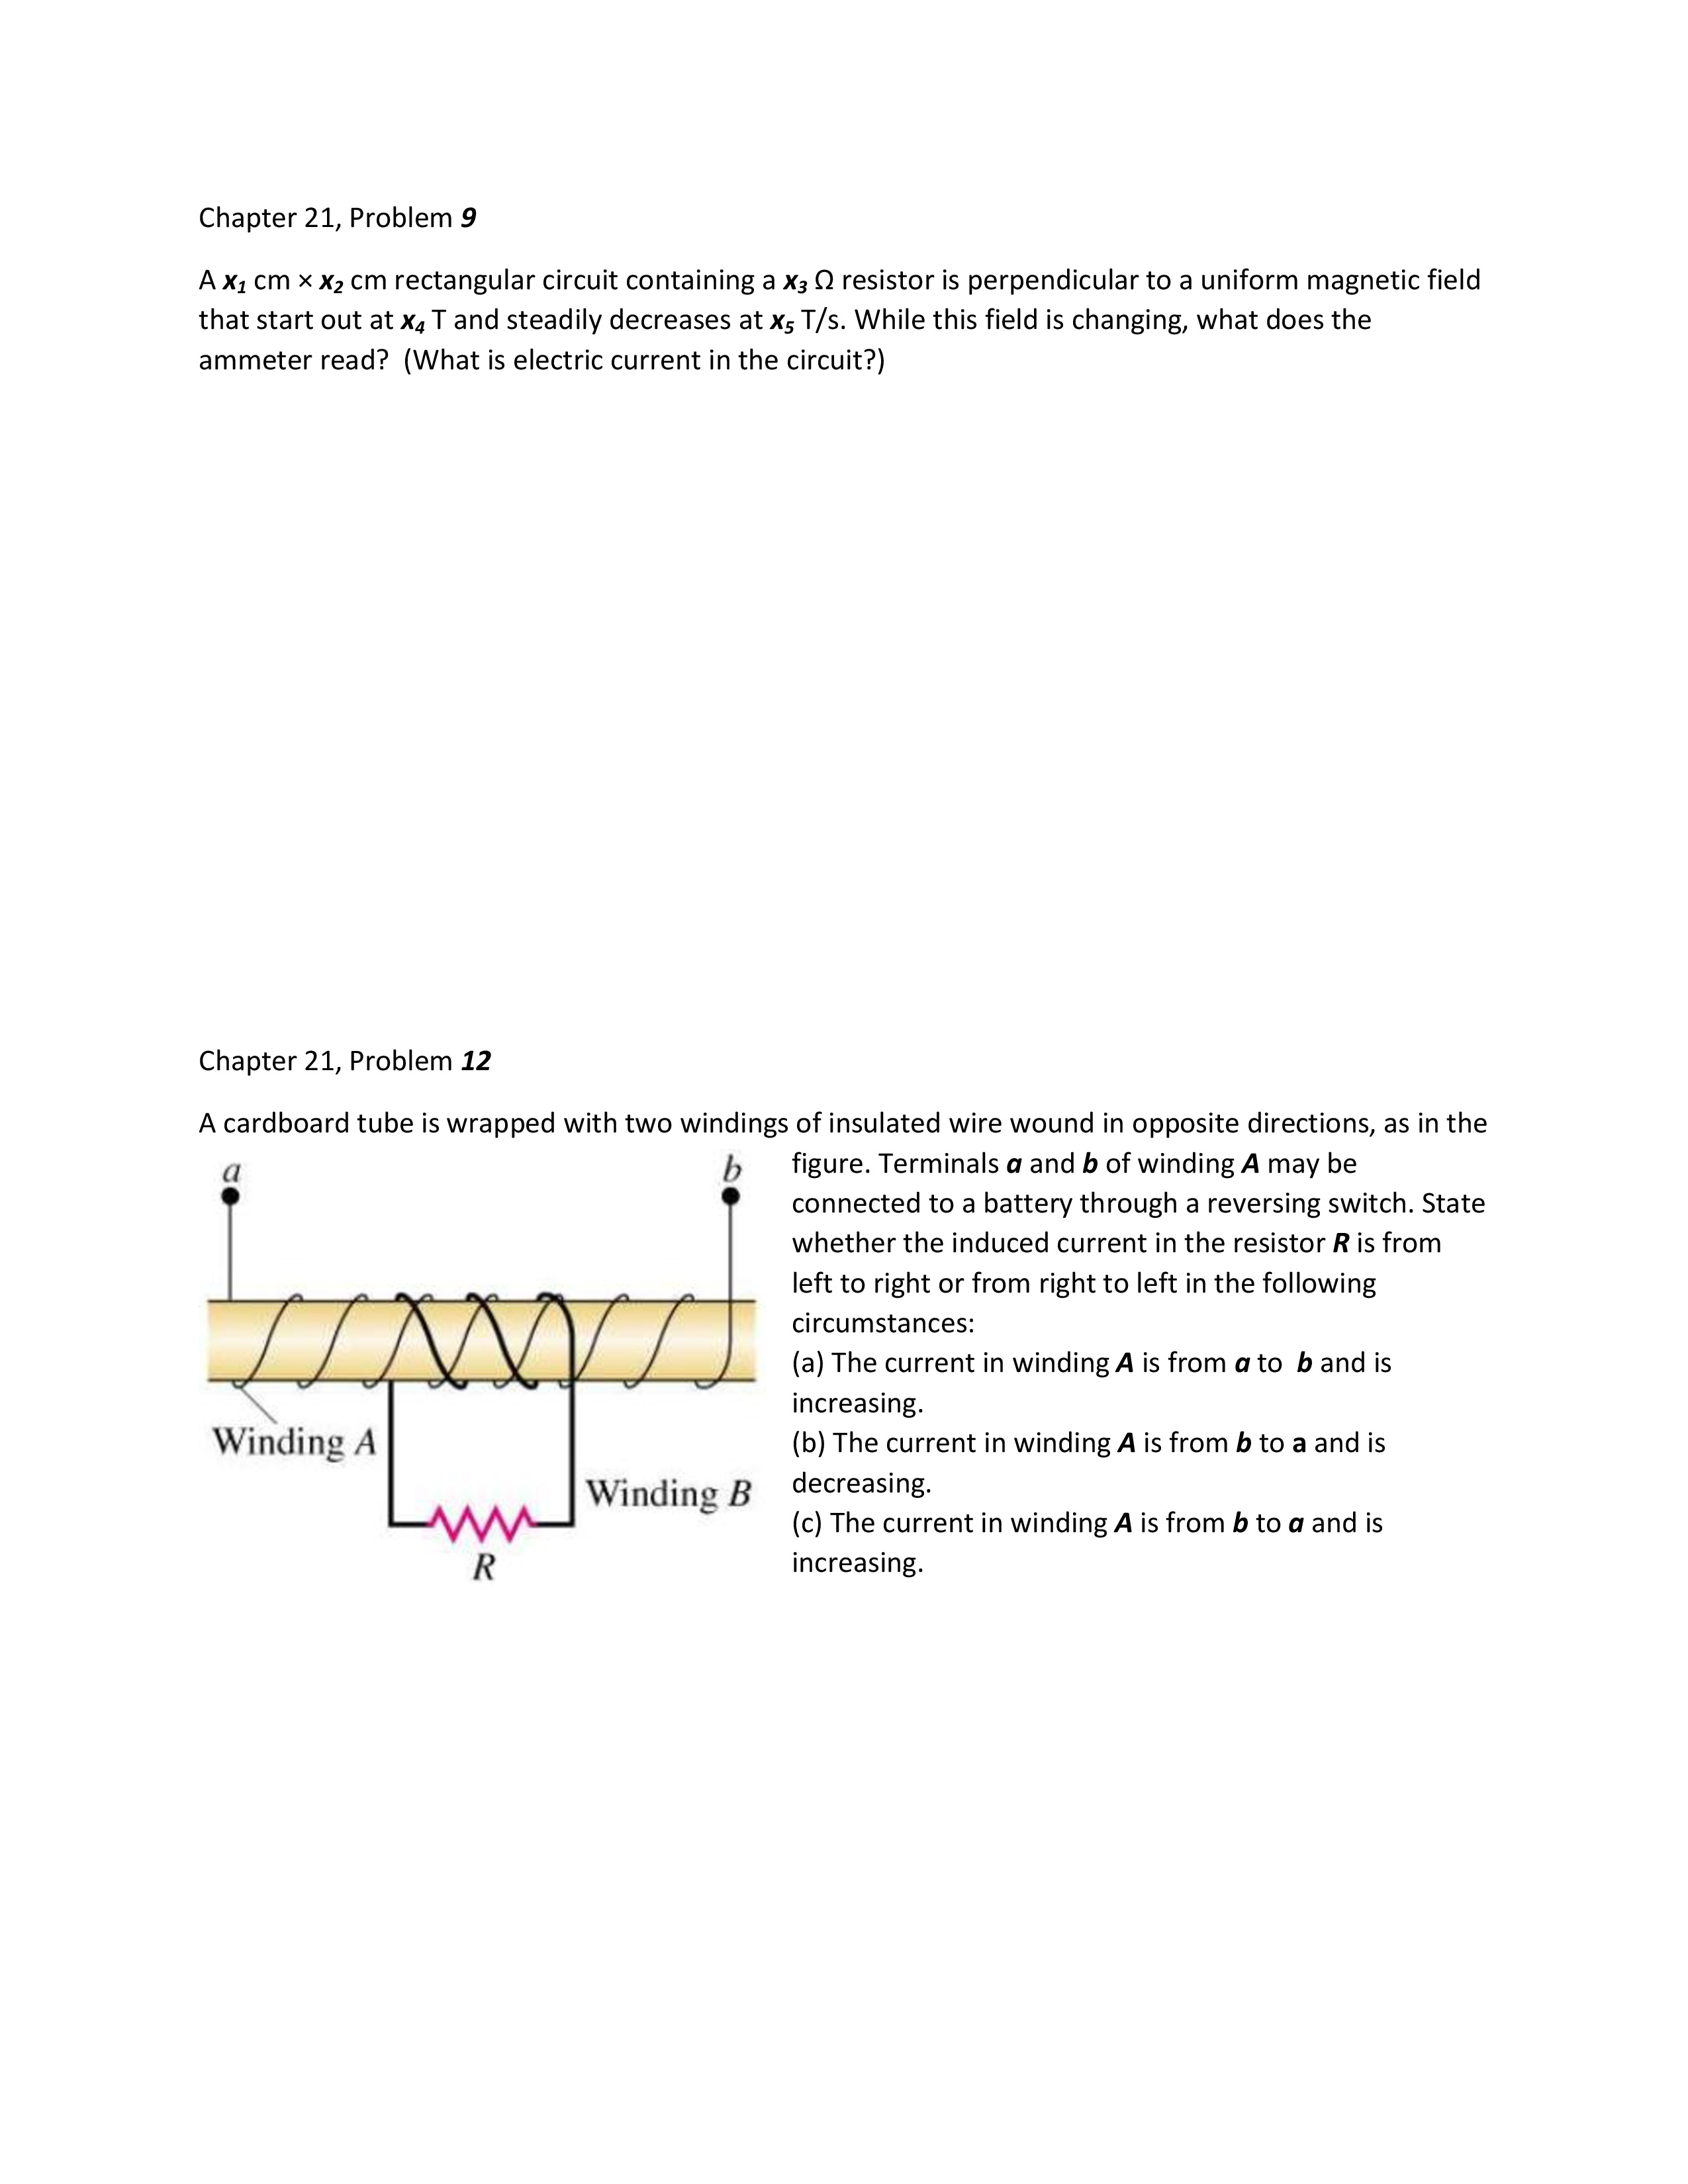 Chapter 21 Electromagnetic Induction Homework Worksheet